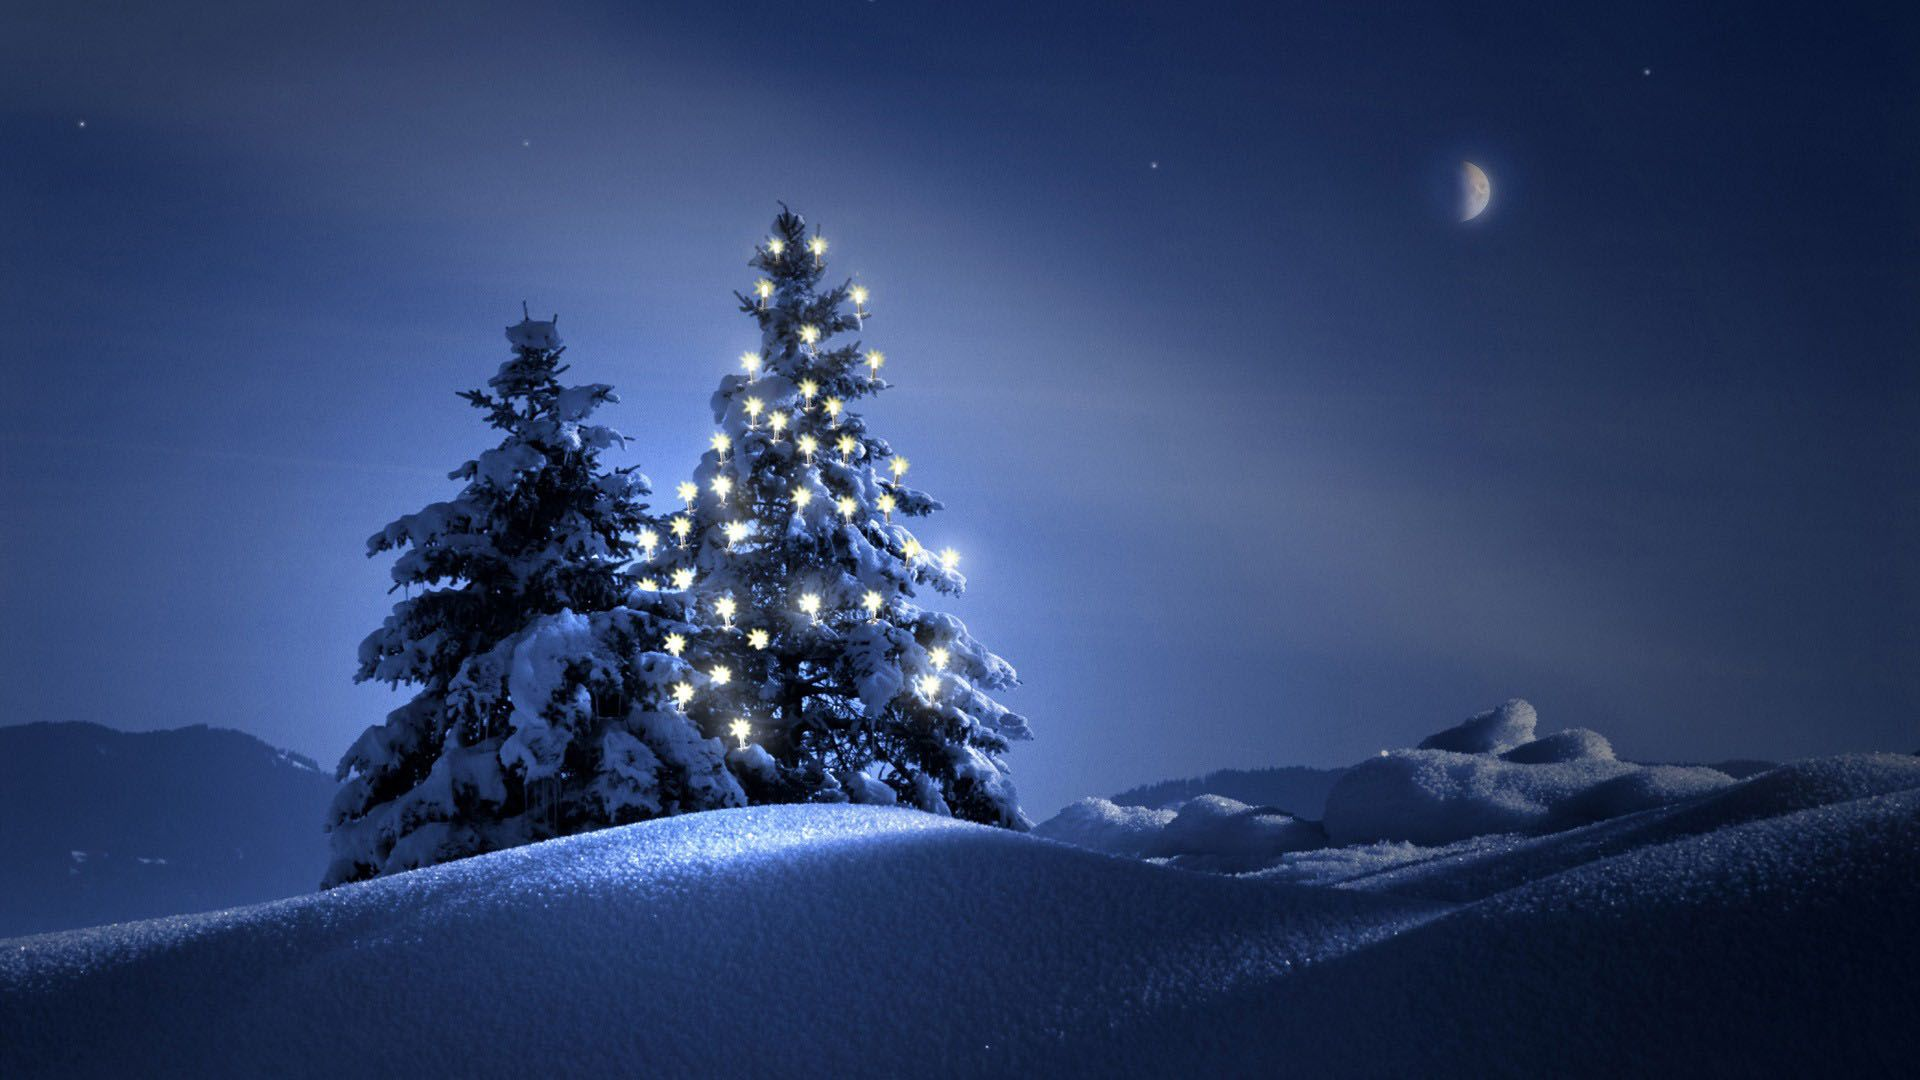 Beautiful Outdoor Christmas Trees At Night Christmas Tree Wallpaper Beautiful Winter Scenes Winter Scenery